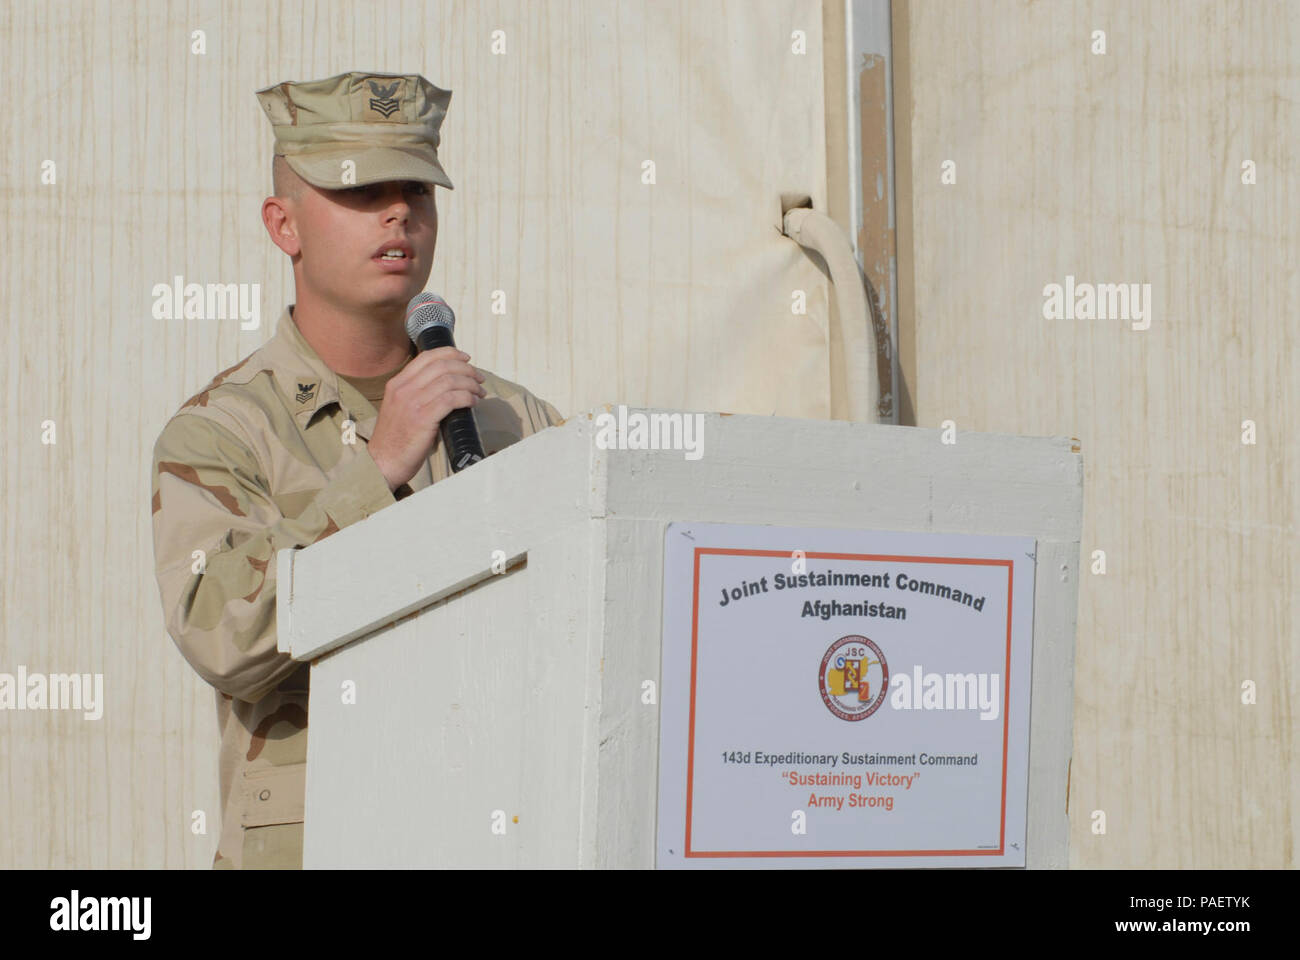 Chief Petty Officer Alan Grow of Bogalusa La., assigned to the 30th Naval Construction Regiment, delivers a message to service members during a memorial ceremony held at Kandahar Airfield. Sailors assigned to 30NCR and soldiers assigned to the 143D Expeditionary Sustainment Command, take time to honor those who lost their lives on Sept 11, 2001, and to pay tribute to the servicemen and women that have paid the ultimate sacrifice in support of Operations Iraqi Freedom and Enduring Freedom.  30NCR, homeported in Port Hueneme, Calif., and the 143d ESC, based in Orlando, Fla., are deployed to Afgh - Stock Image